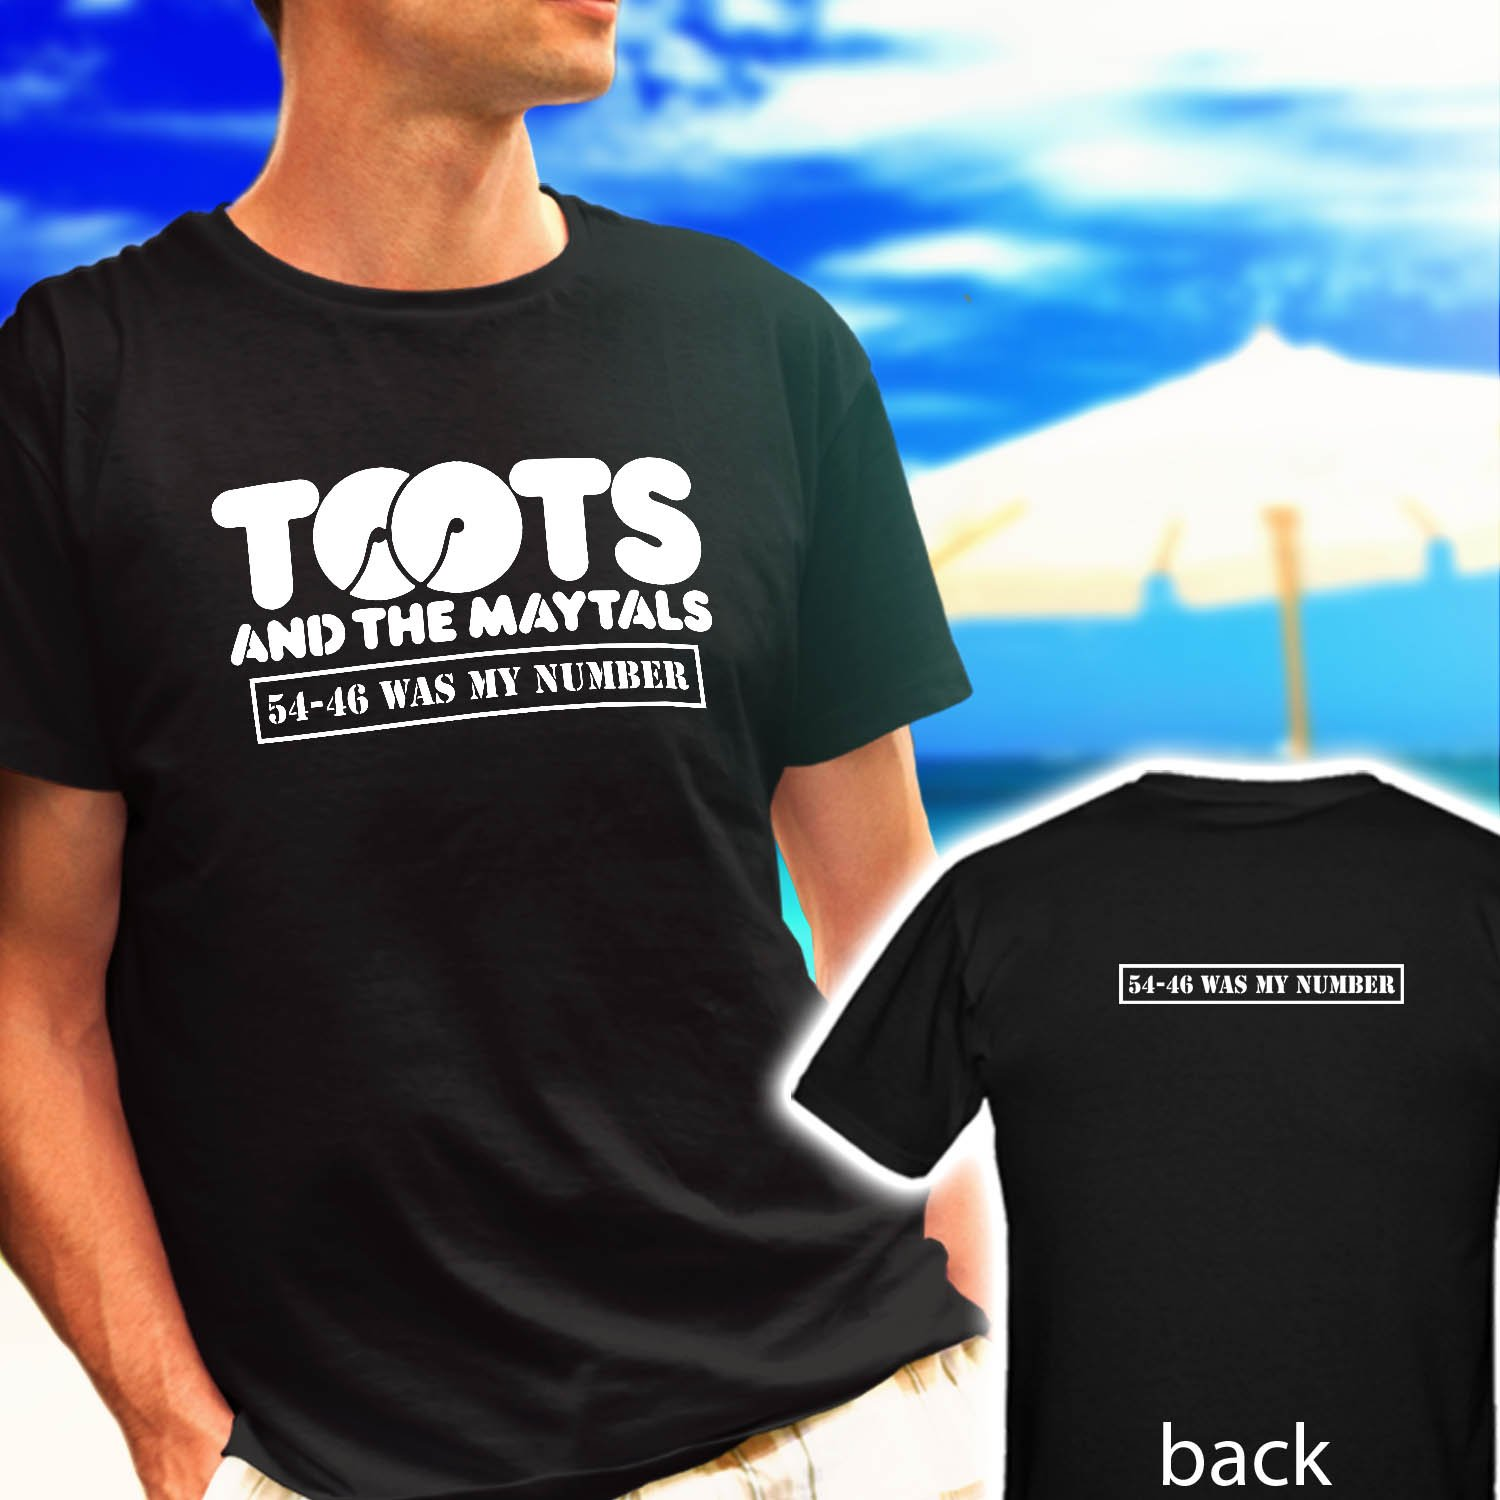 Toots and The Maytals Reggae Studio 54-46 was my number black t-shirt tshirt shirts tee SIZE XL